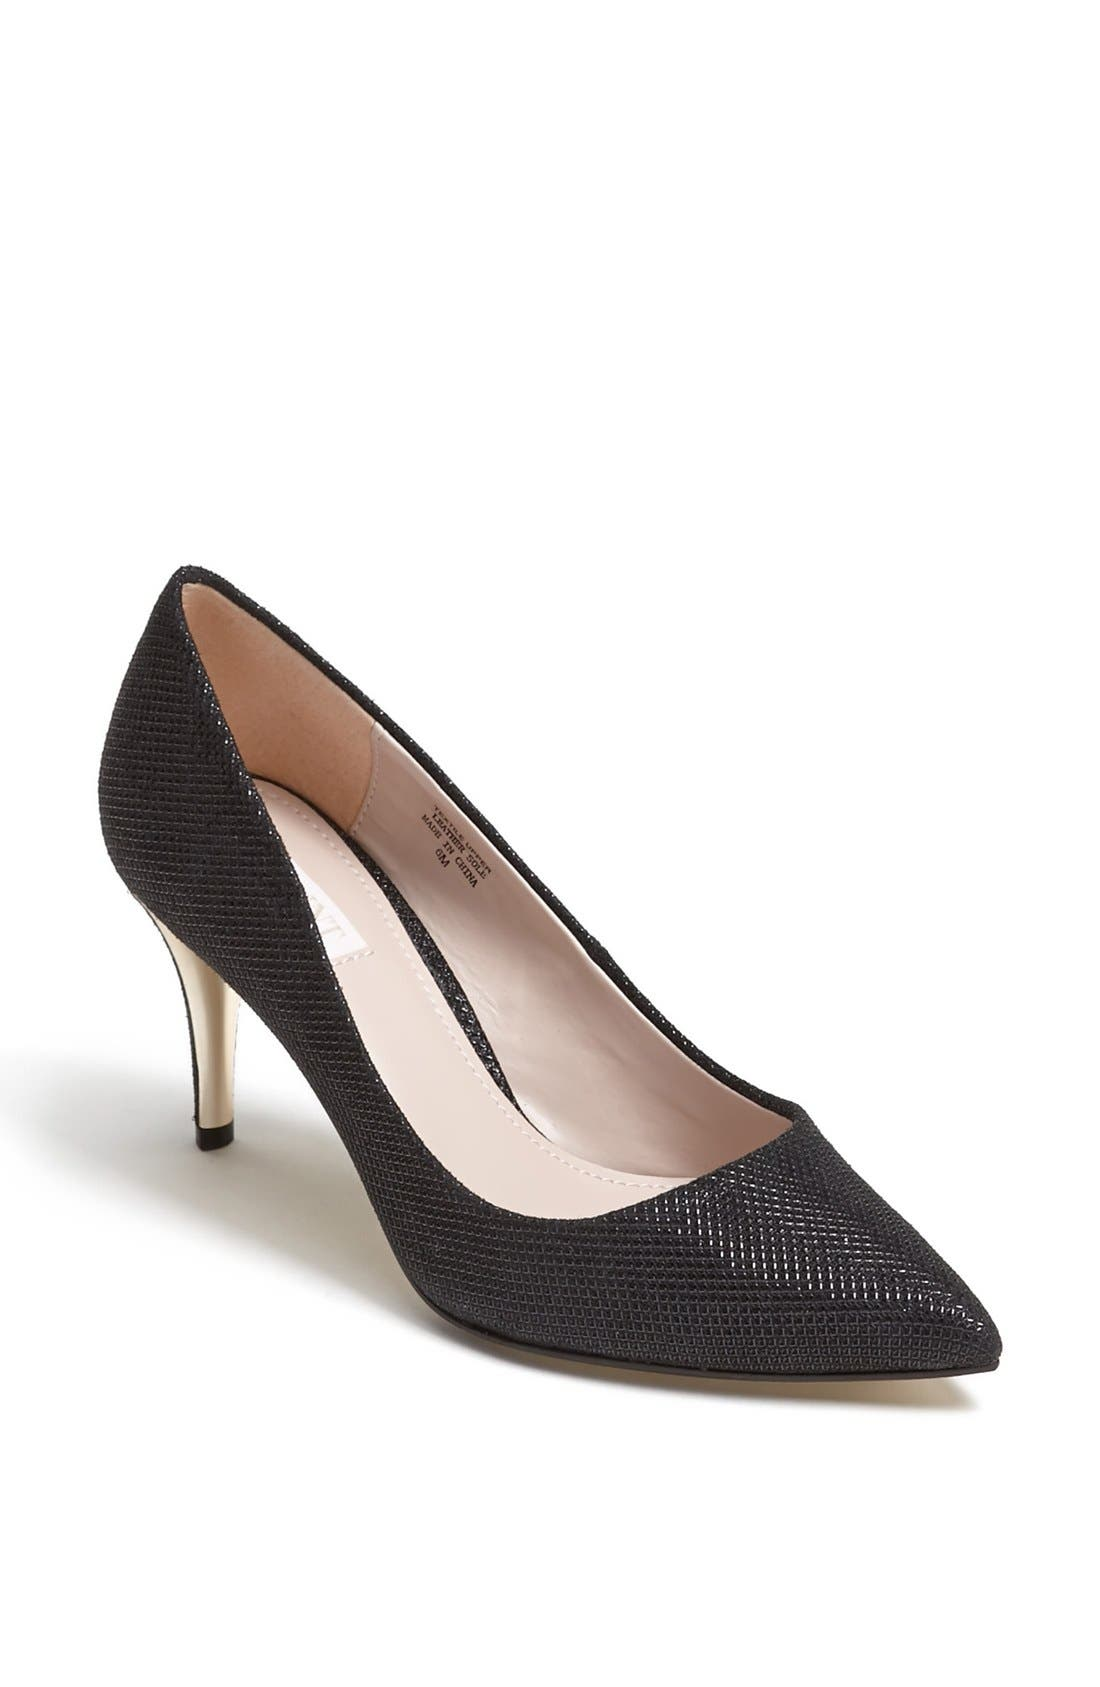 Alternate Image 1 Selected - GLINT ELENA MID HEEL PUMP